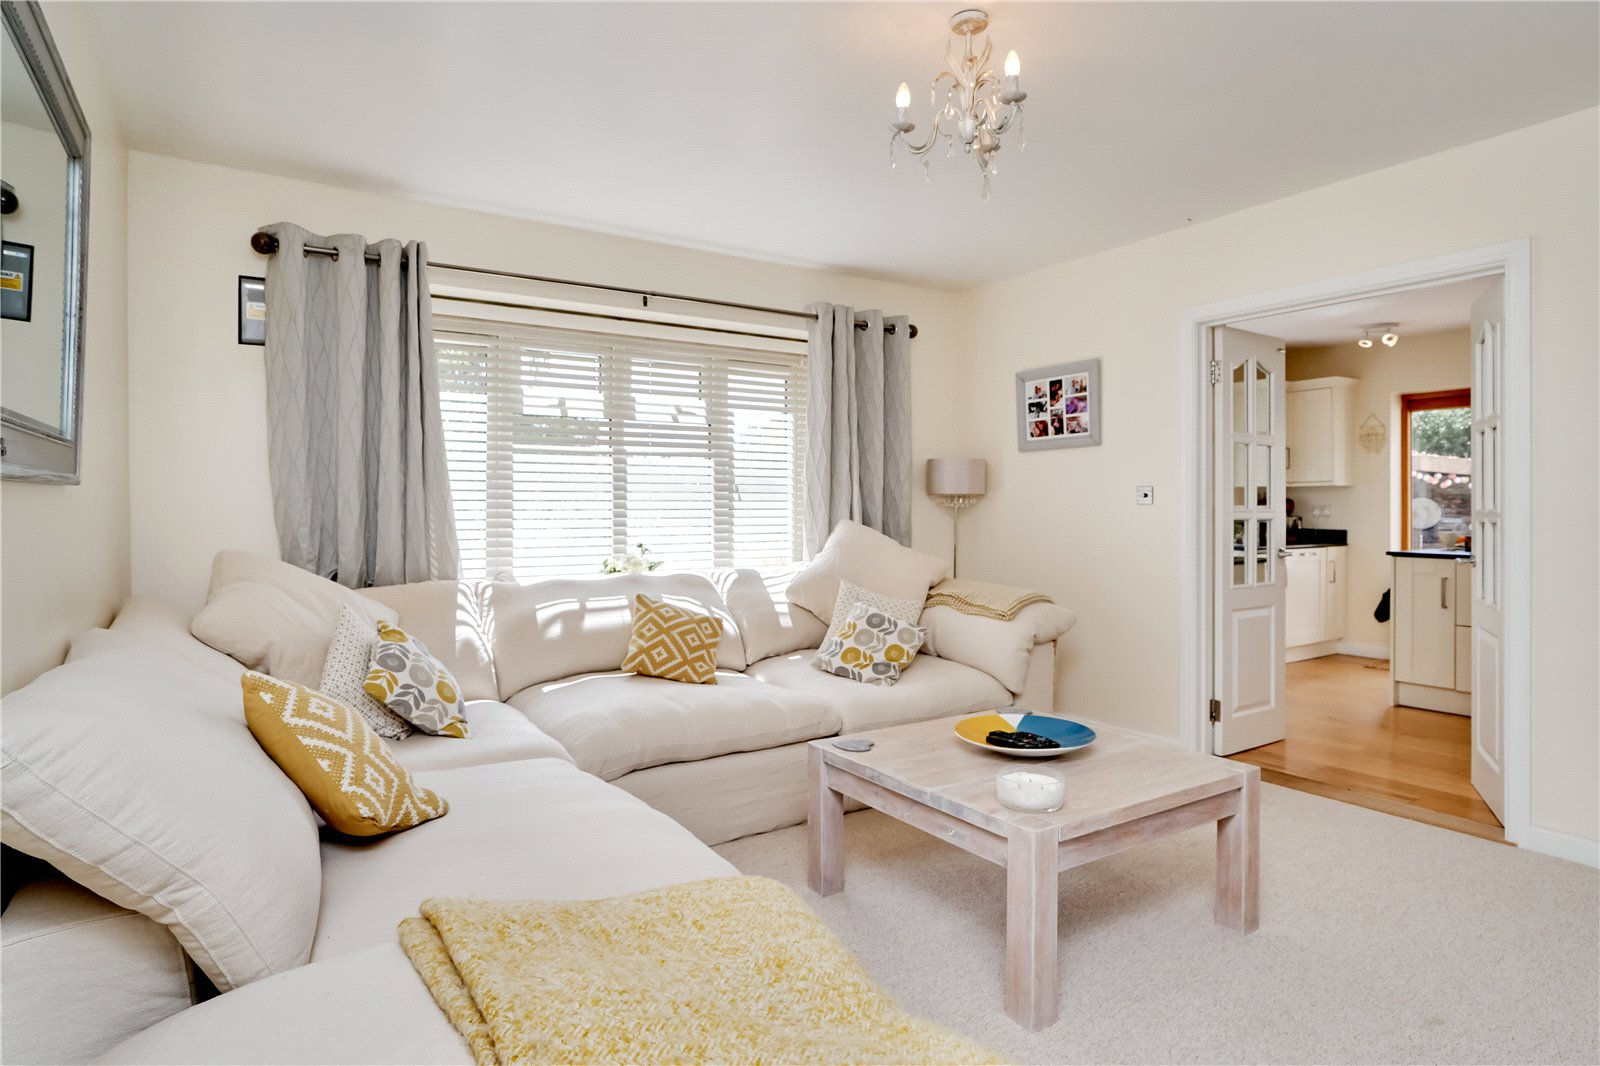 4 bed house for sale in Welwyn, AL6 0QG 8